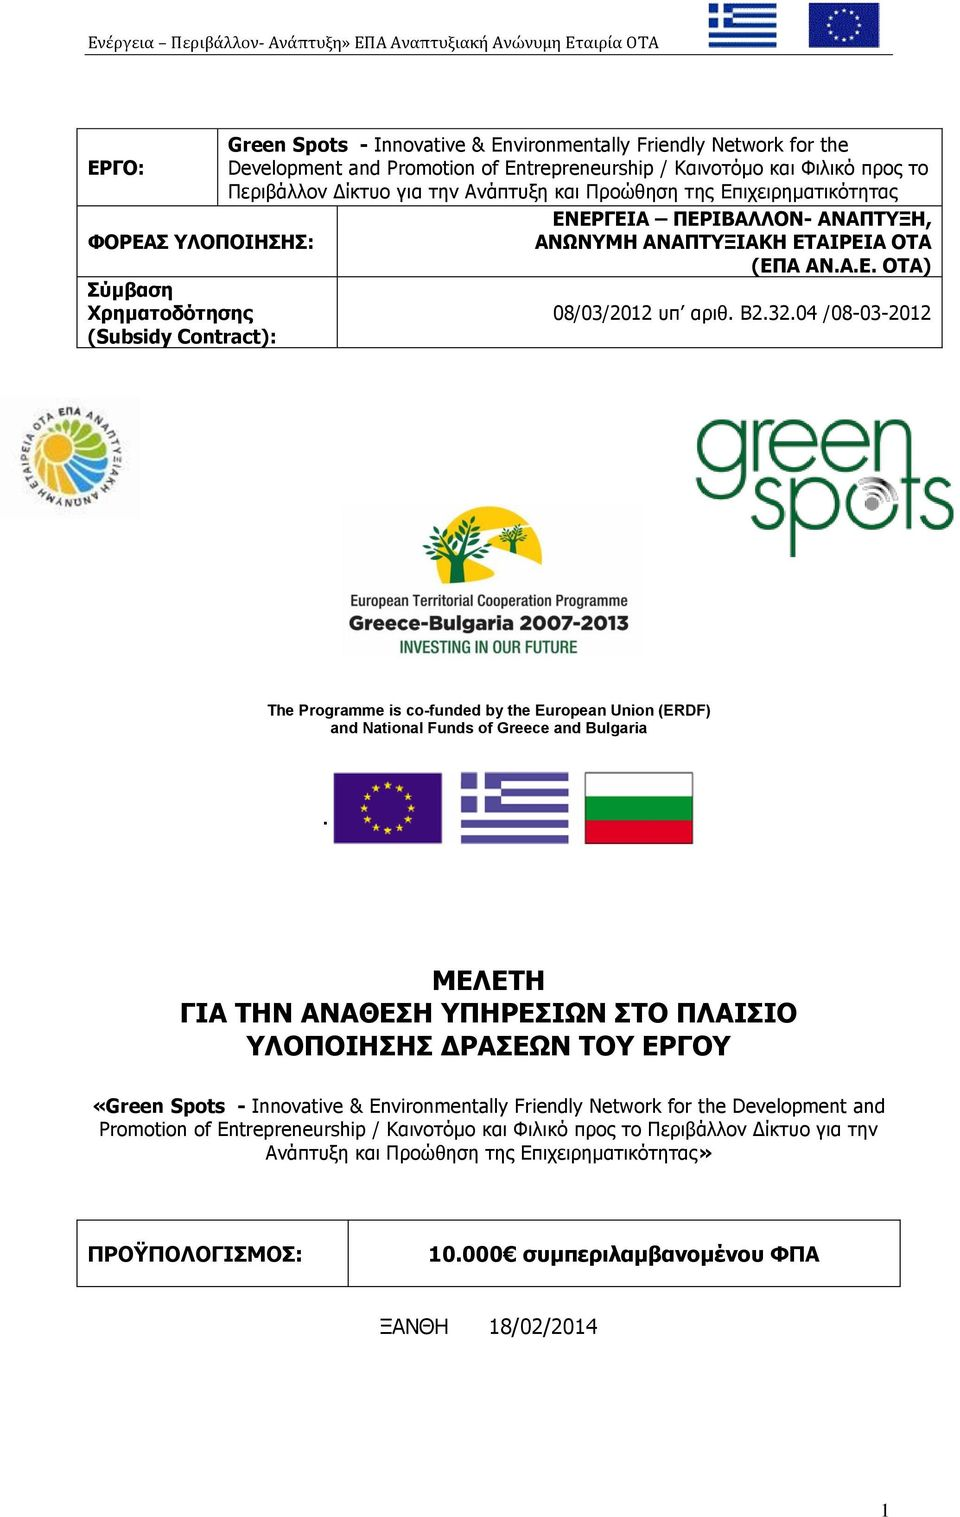 04 /08-03-2012 (Subsidy Contract): The Programme is co-funded by the European Union (ERDF) and National Funds of Greece and Bulgaria.